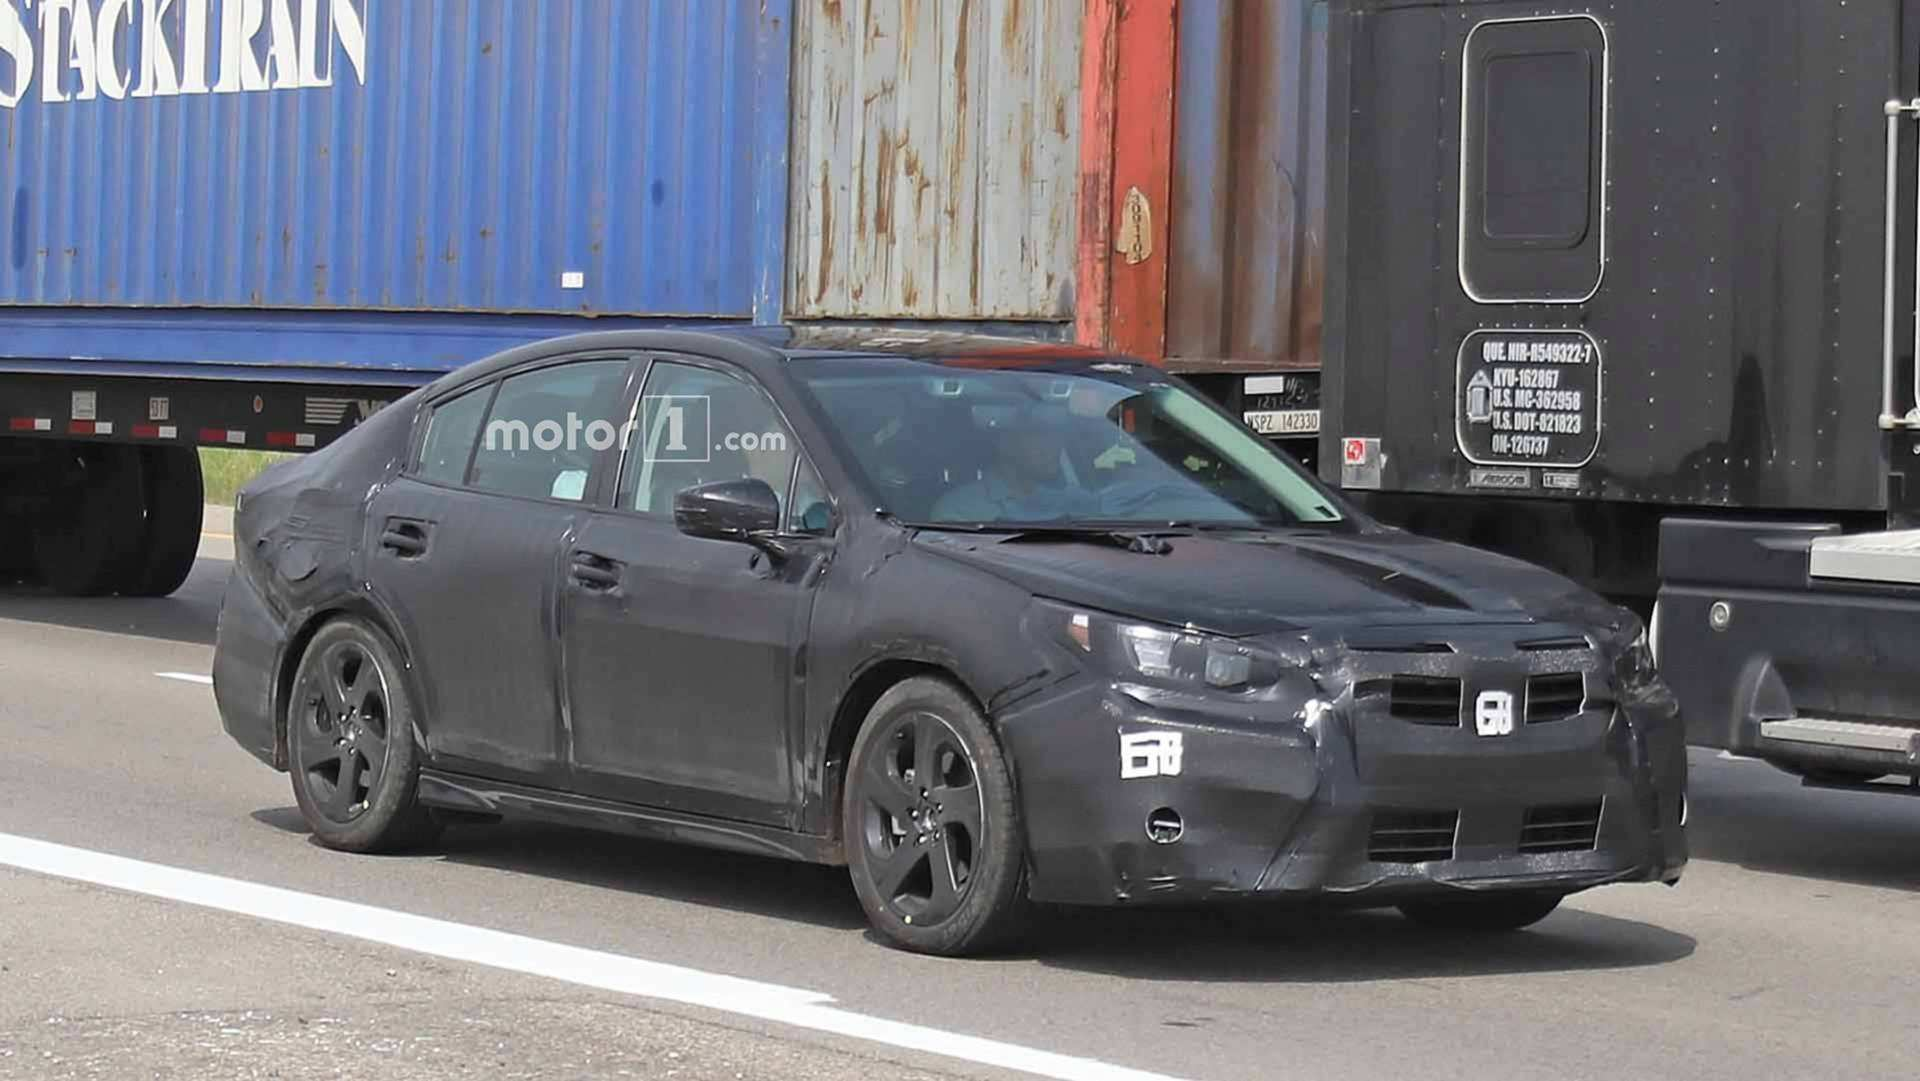 98 Best Review The Subaru Global Platform 2019 Spy Shoot Redesign and Concept with The Subaru Global Platform 2019 Spy Shoot